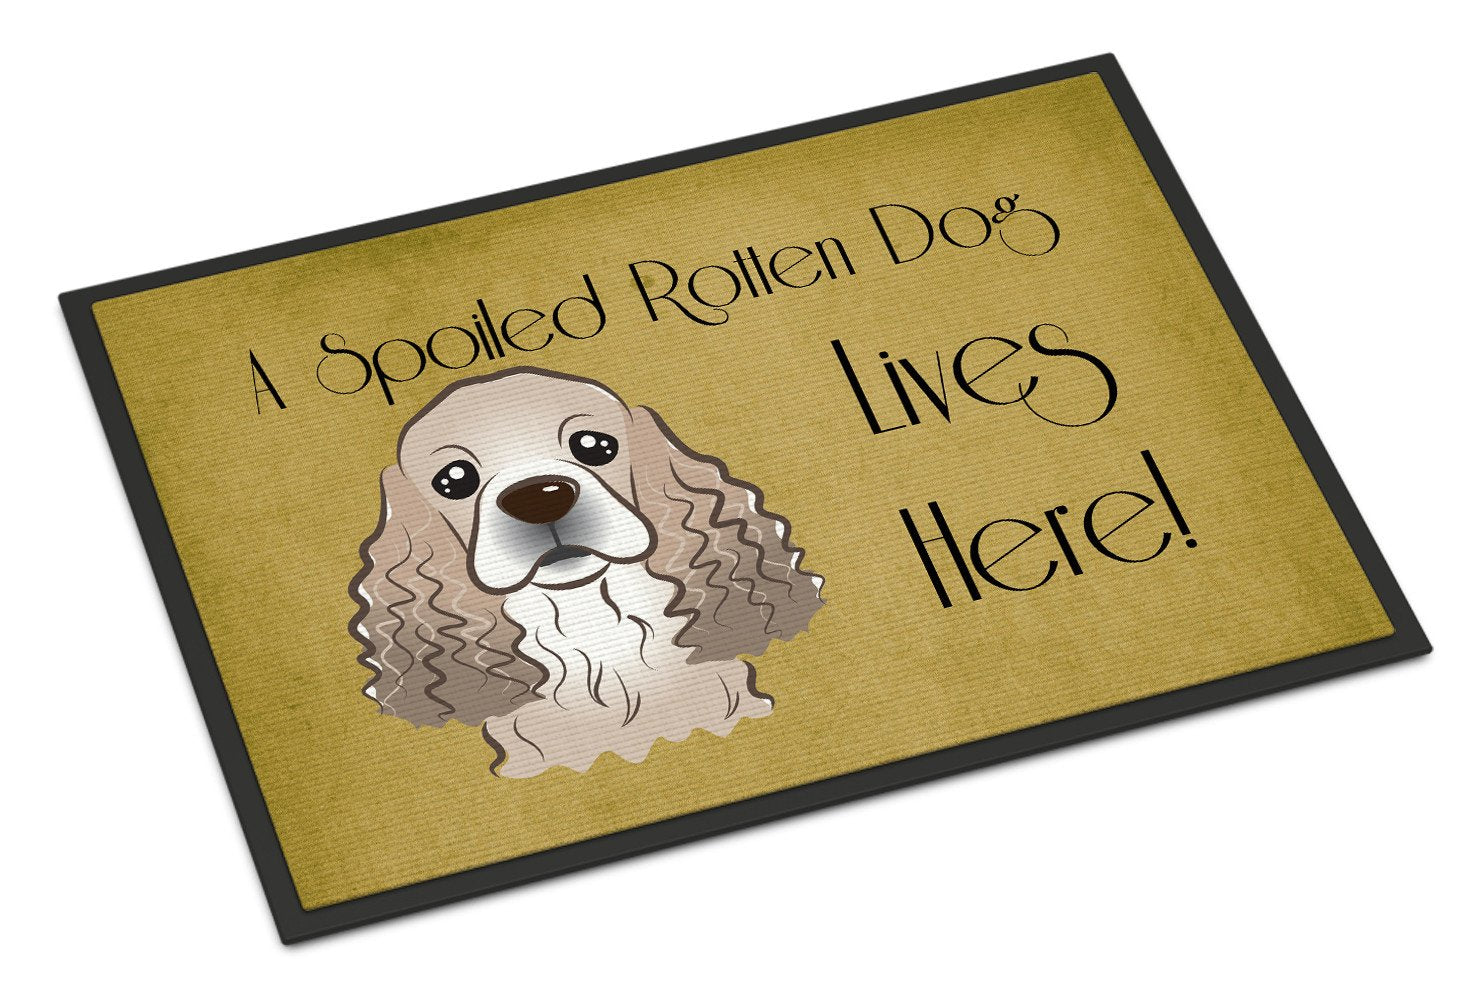 Cocker Spaniel Spoiled Dog Lives Here Indoor or Outdoor Mat 18x27 BB1464MAT - the-store.com